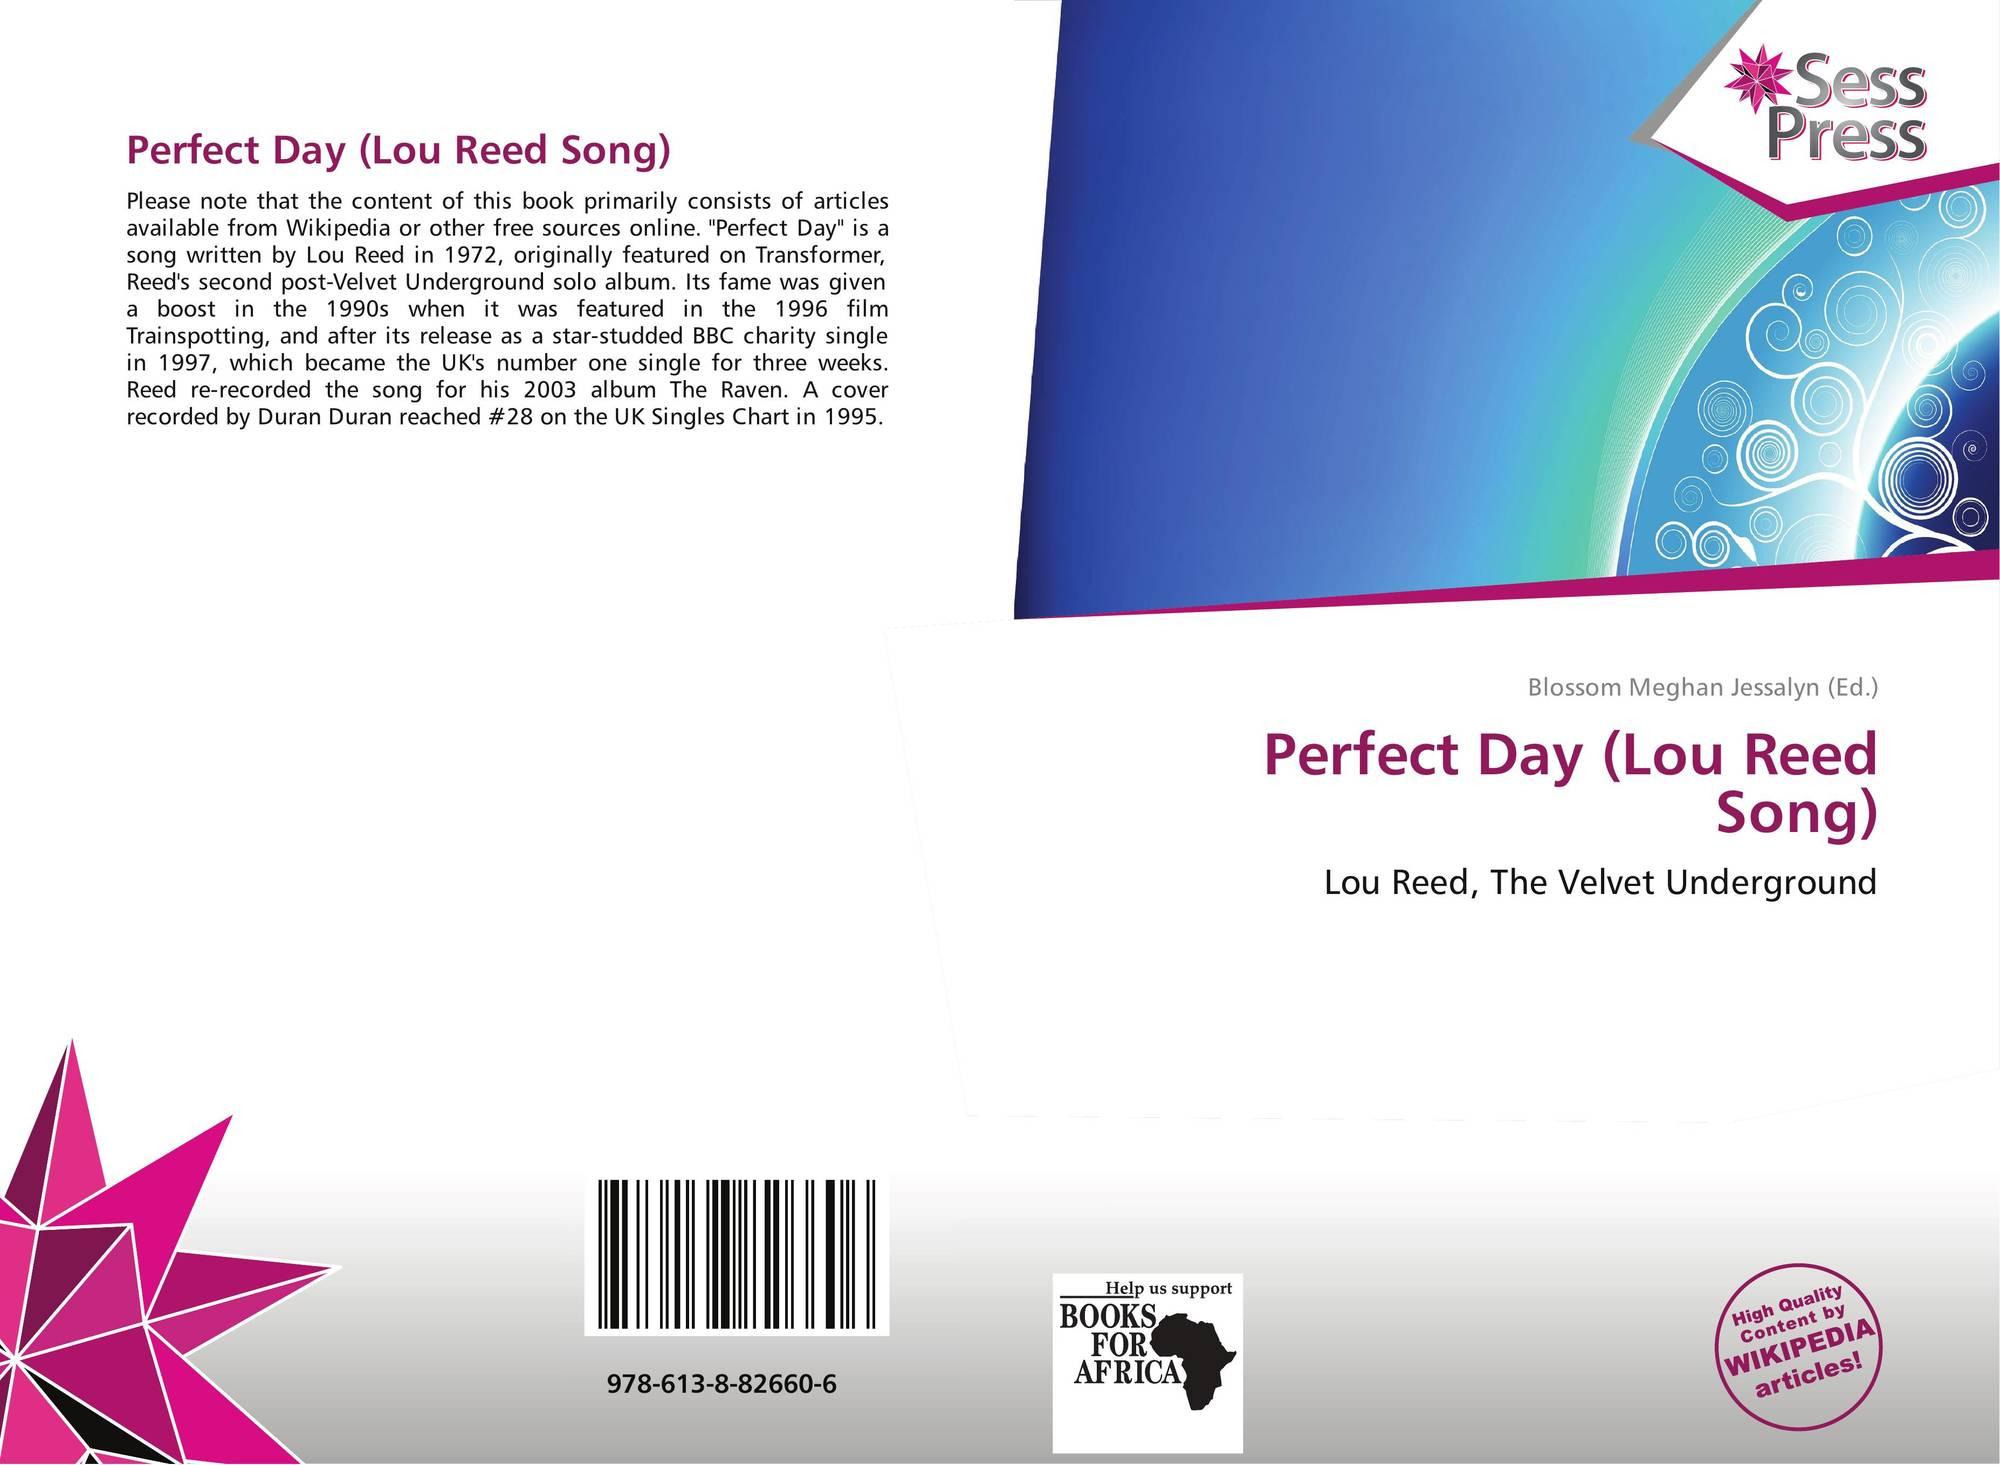 Perfect Day (Lou Reed Song), 978-613-8-82660-6, 6138826604